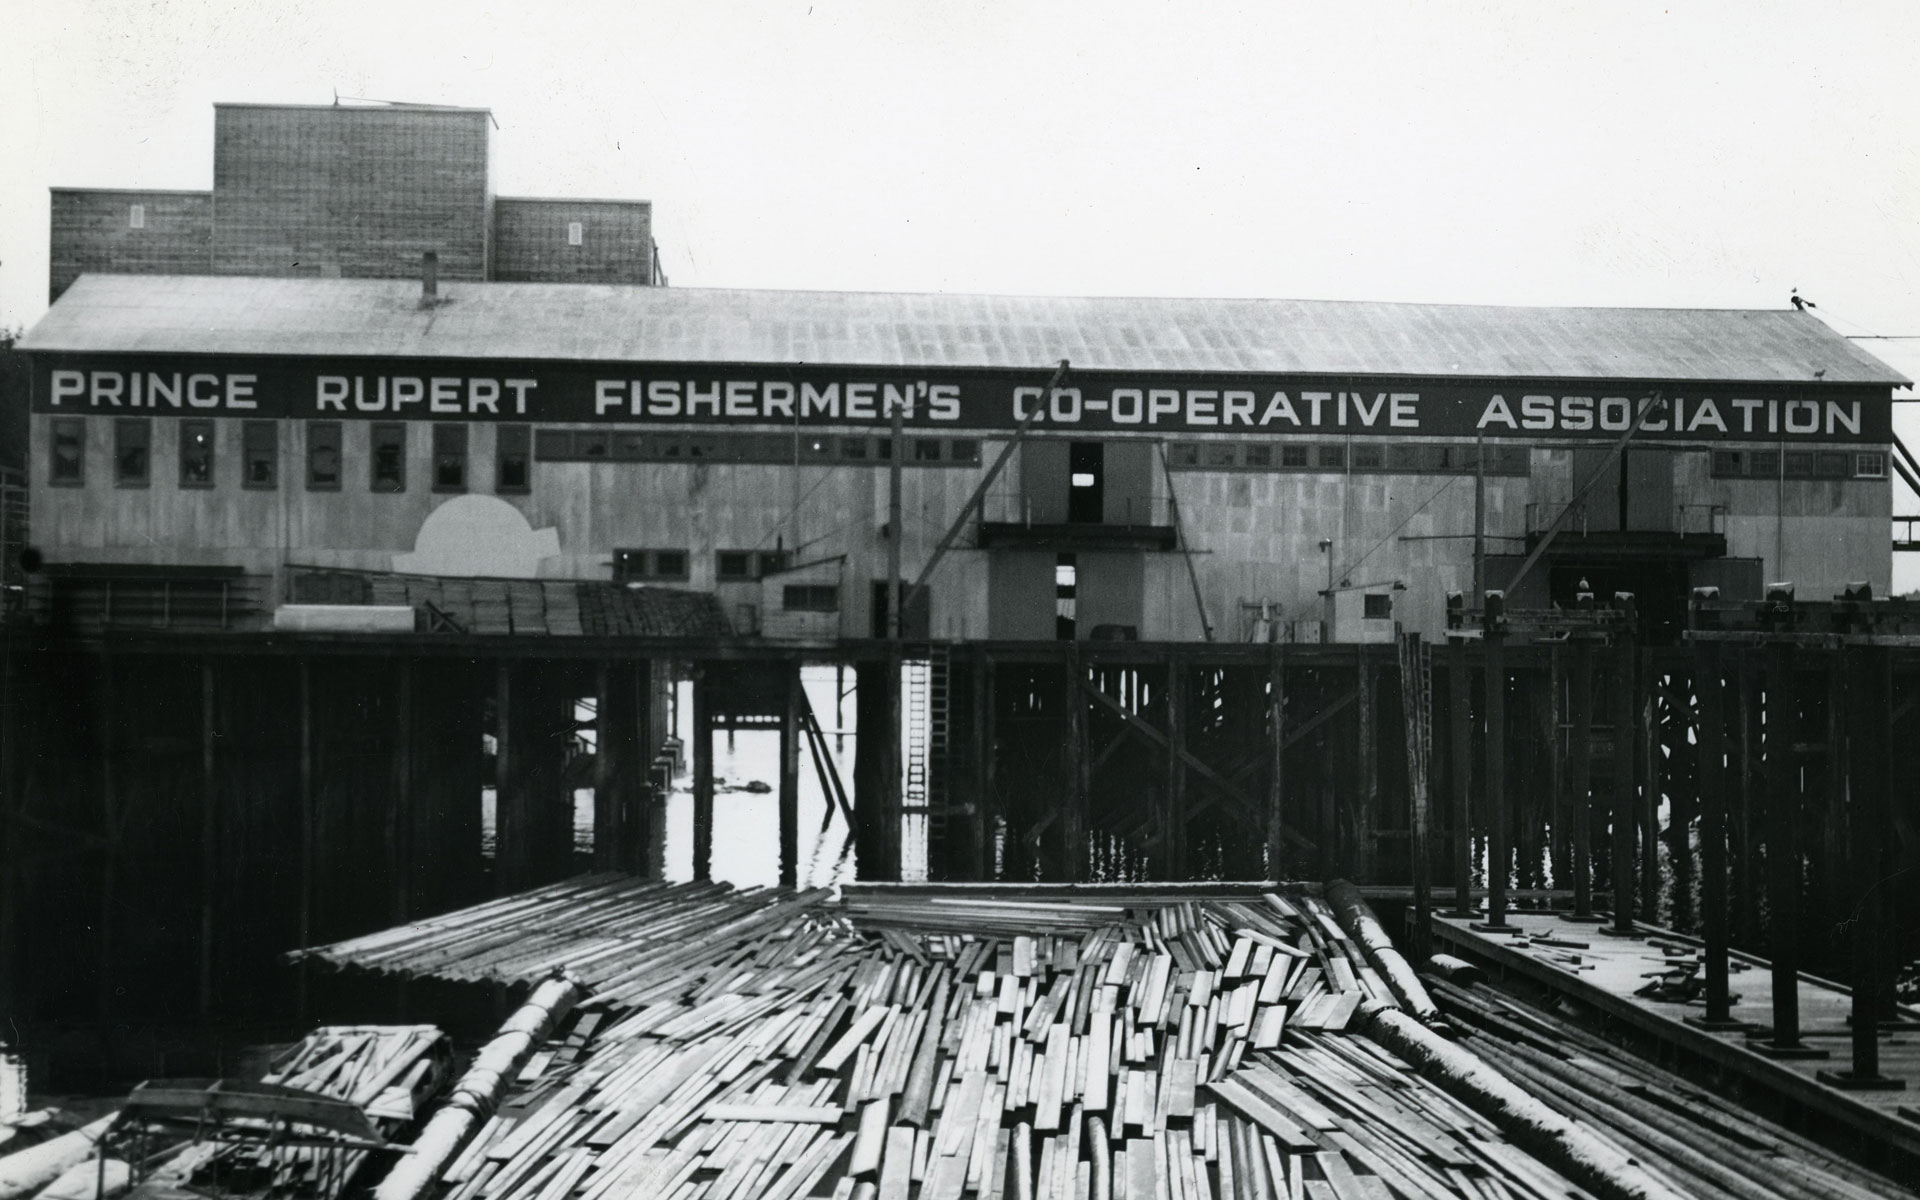 Exterior view of fish shed on pilings.